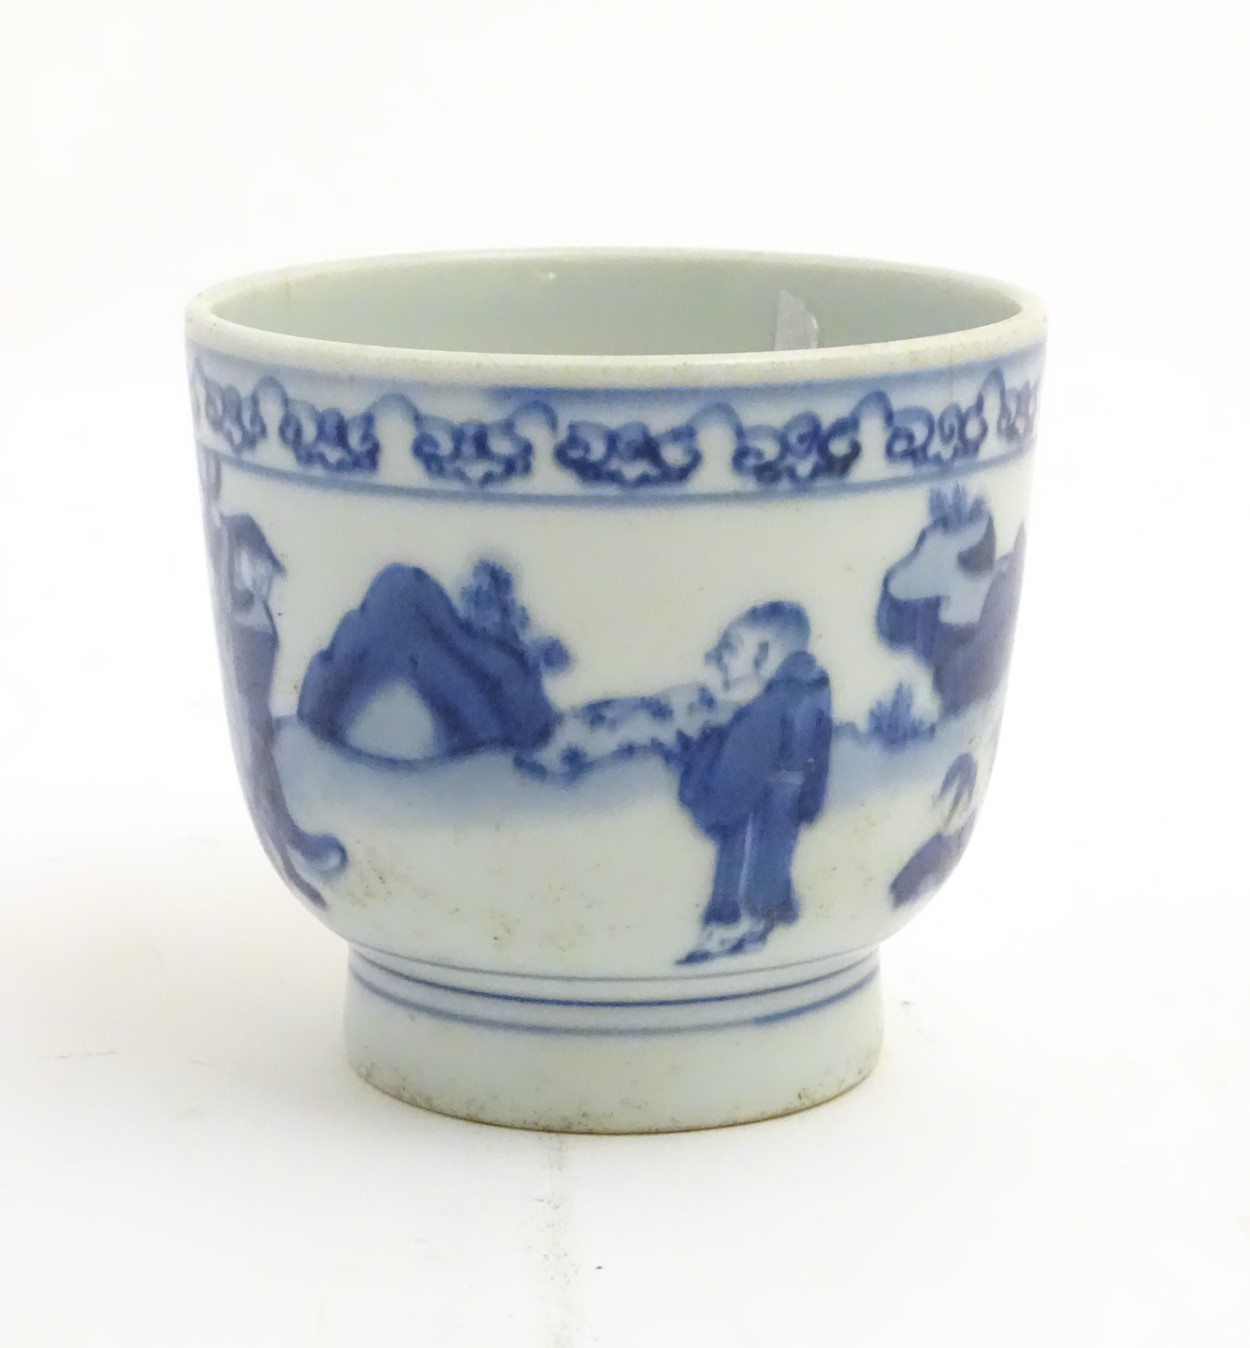 Lot 6 - A Chinese blue and white pot depicting three figures in a landscape. Approx.